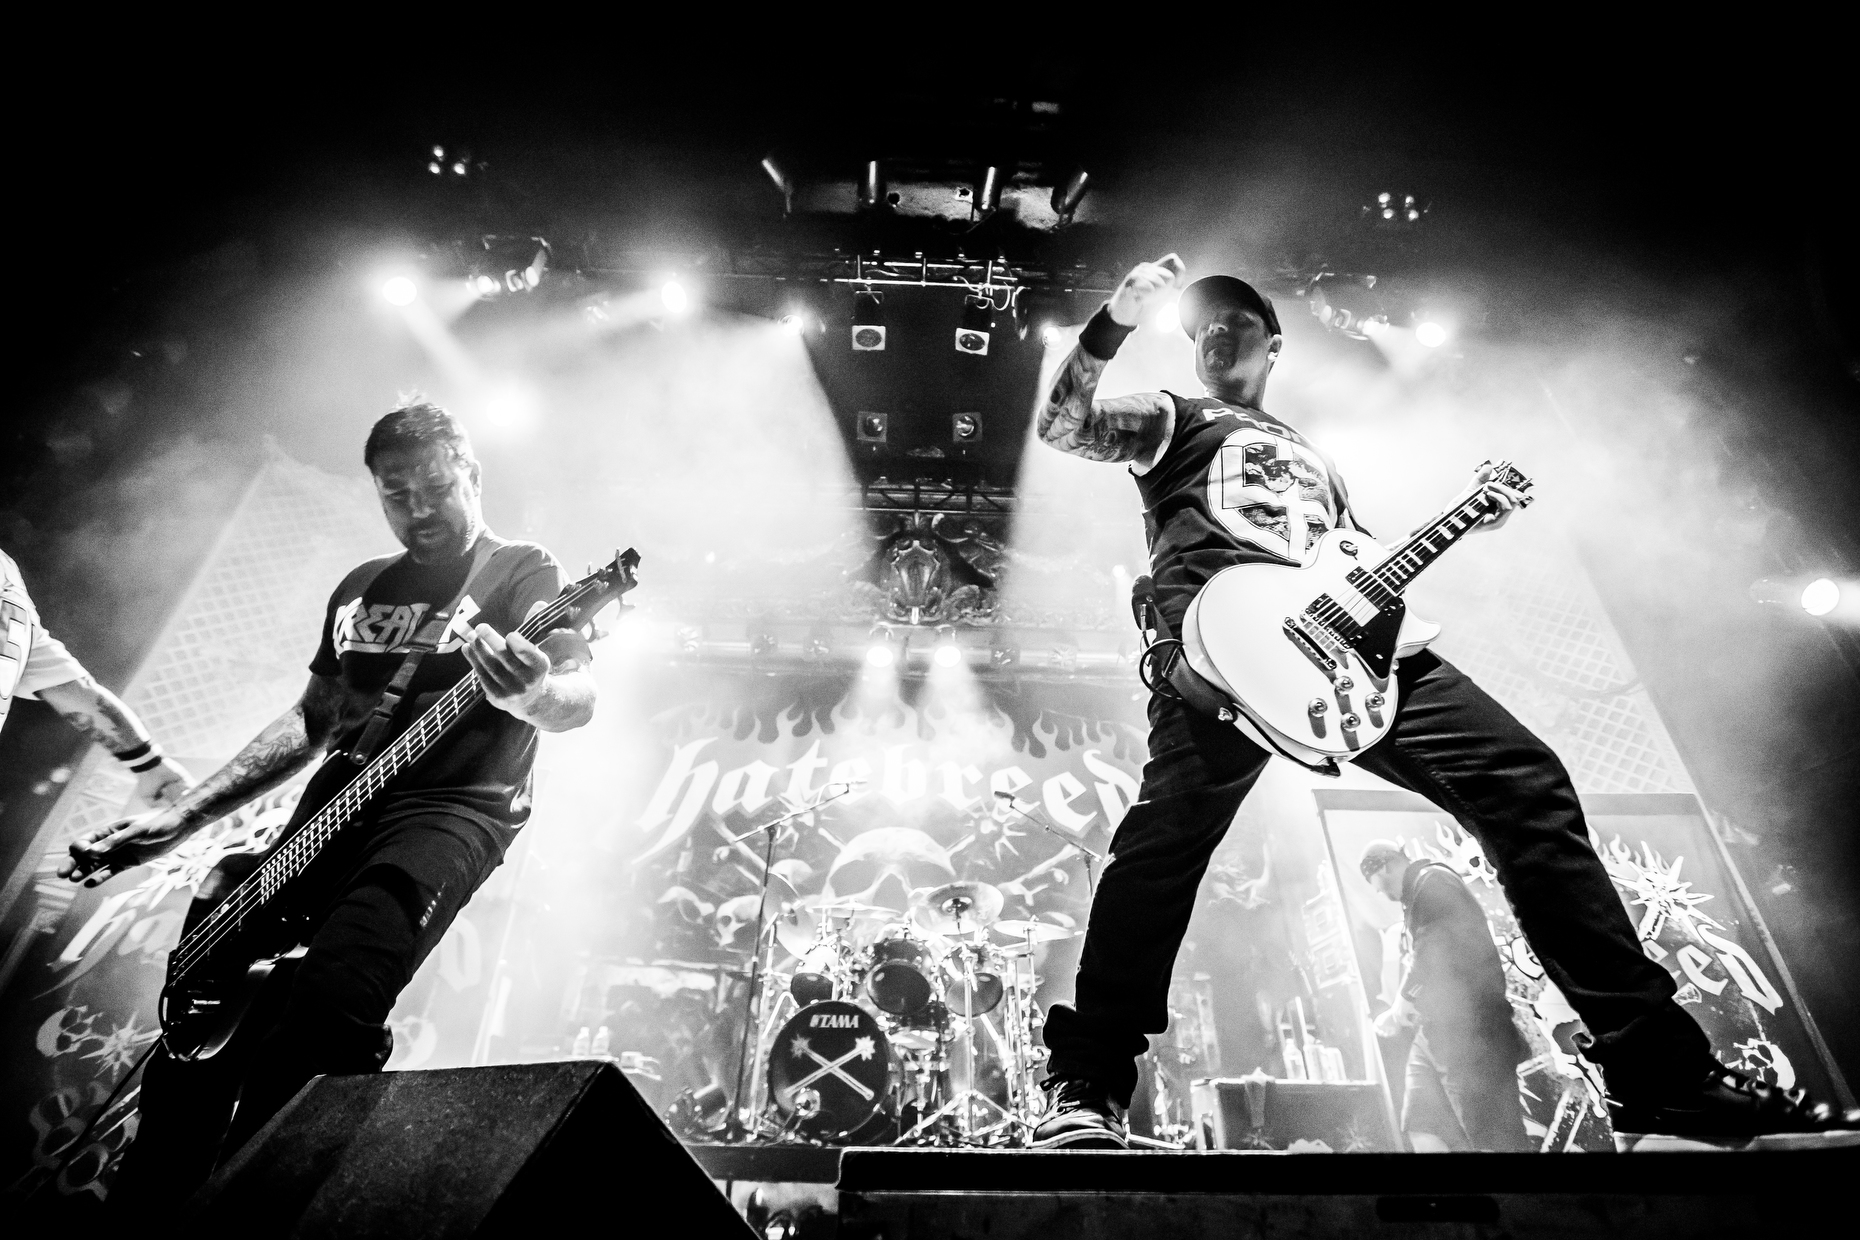 HATEBREED0041.JPG